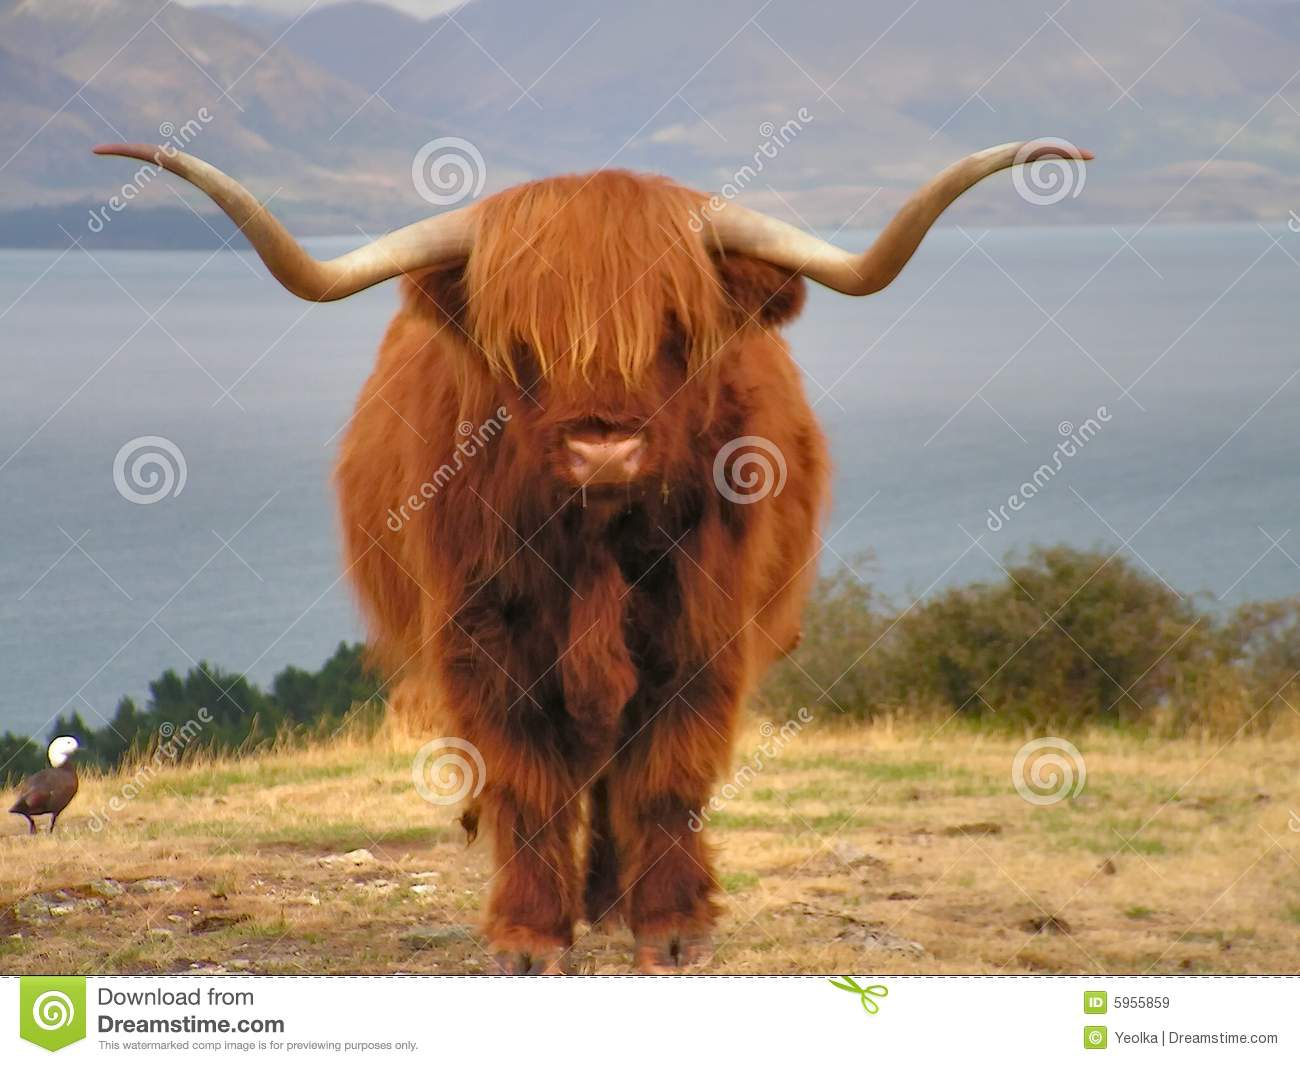 Yak, long-haired ox of Tibet .Deer park, New Zealand.